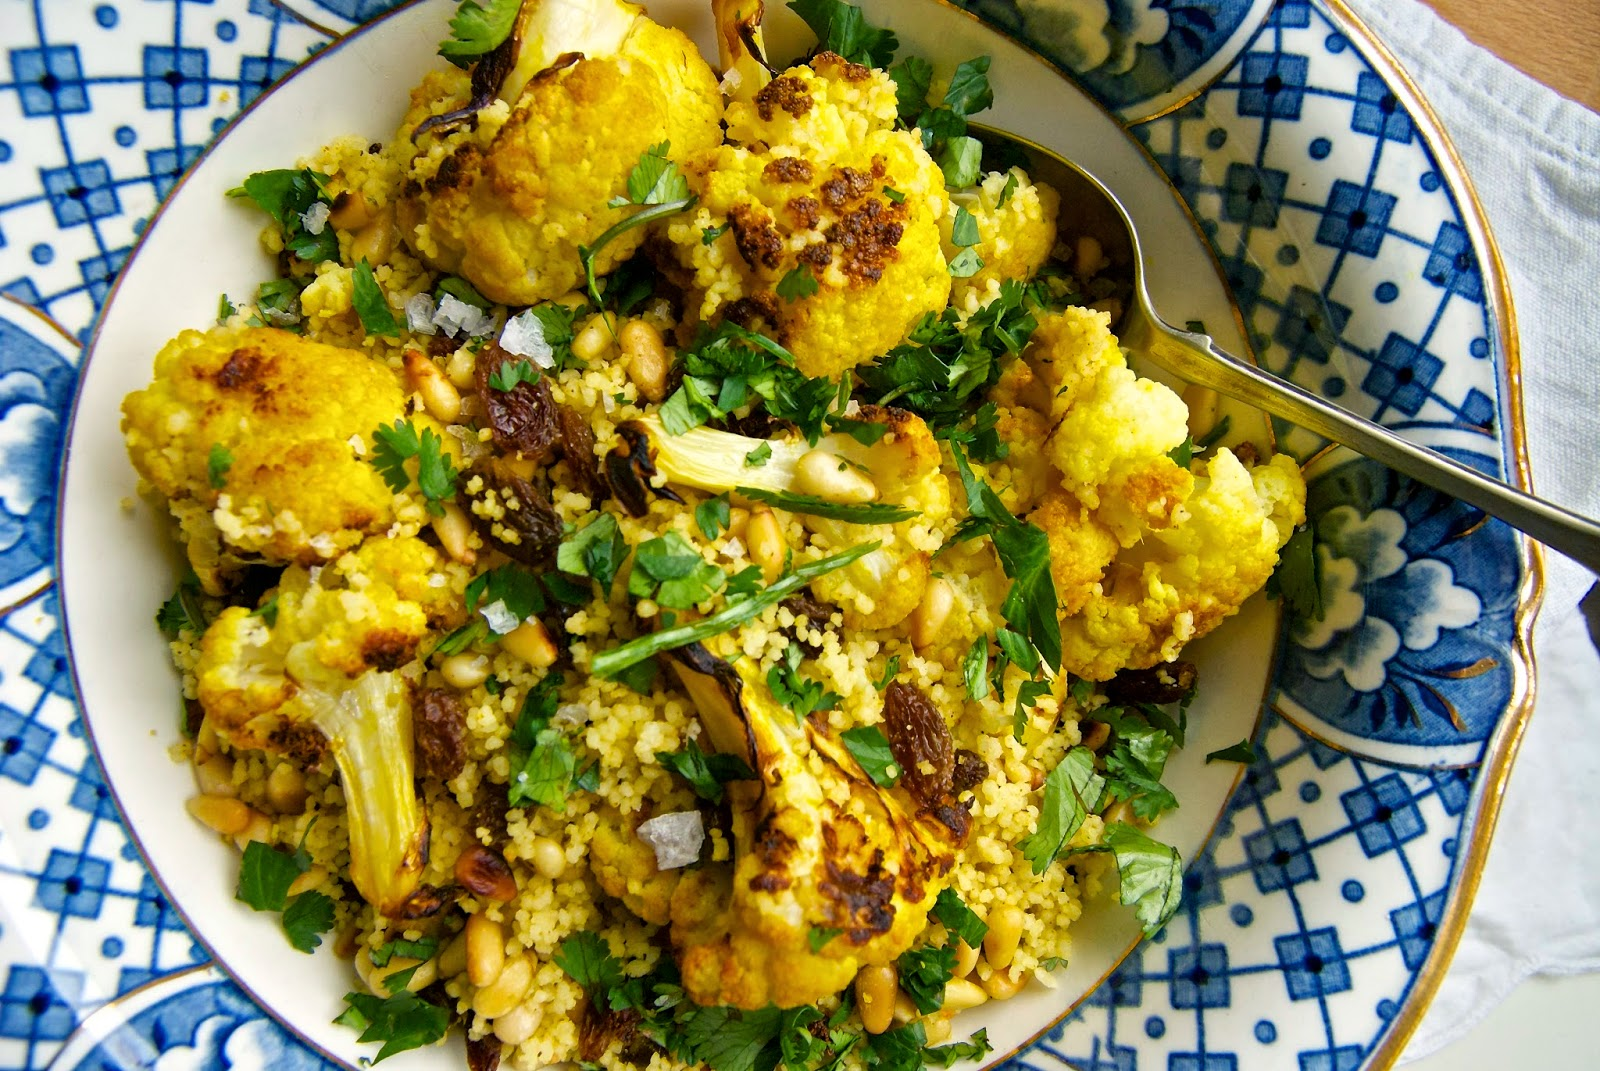 Roasted cauliflower and cous cous salad